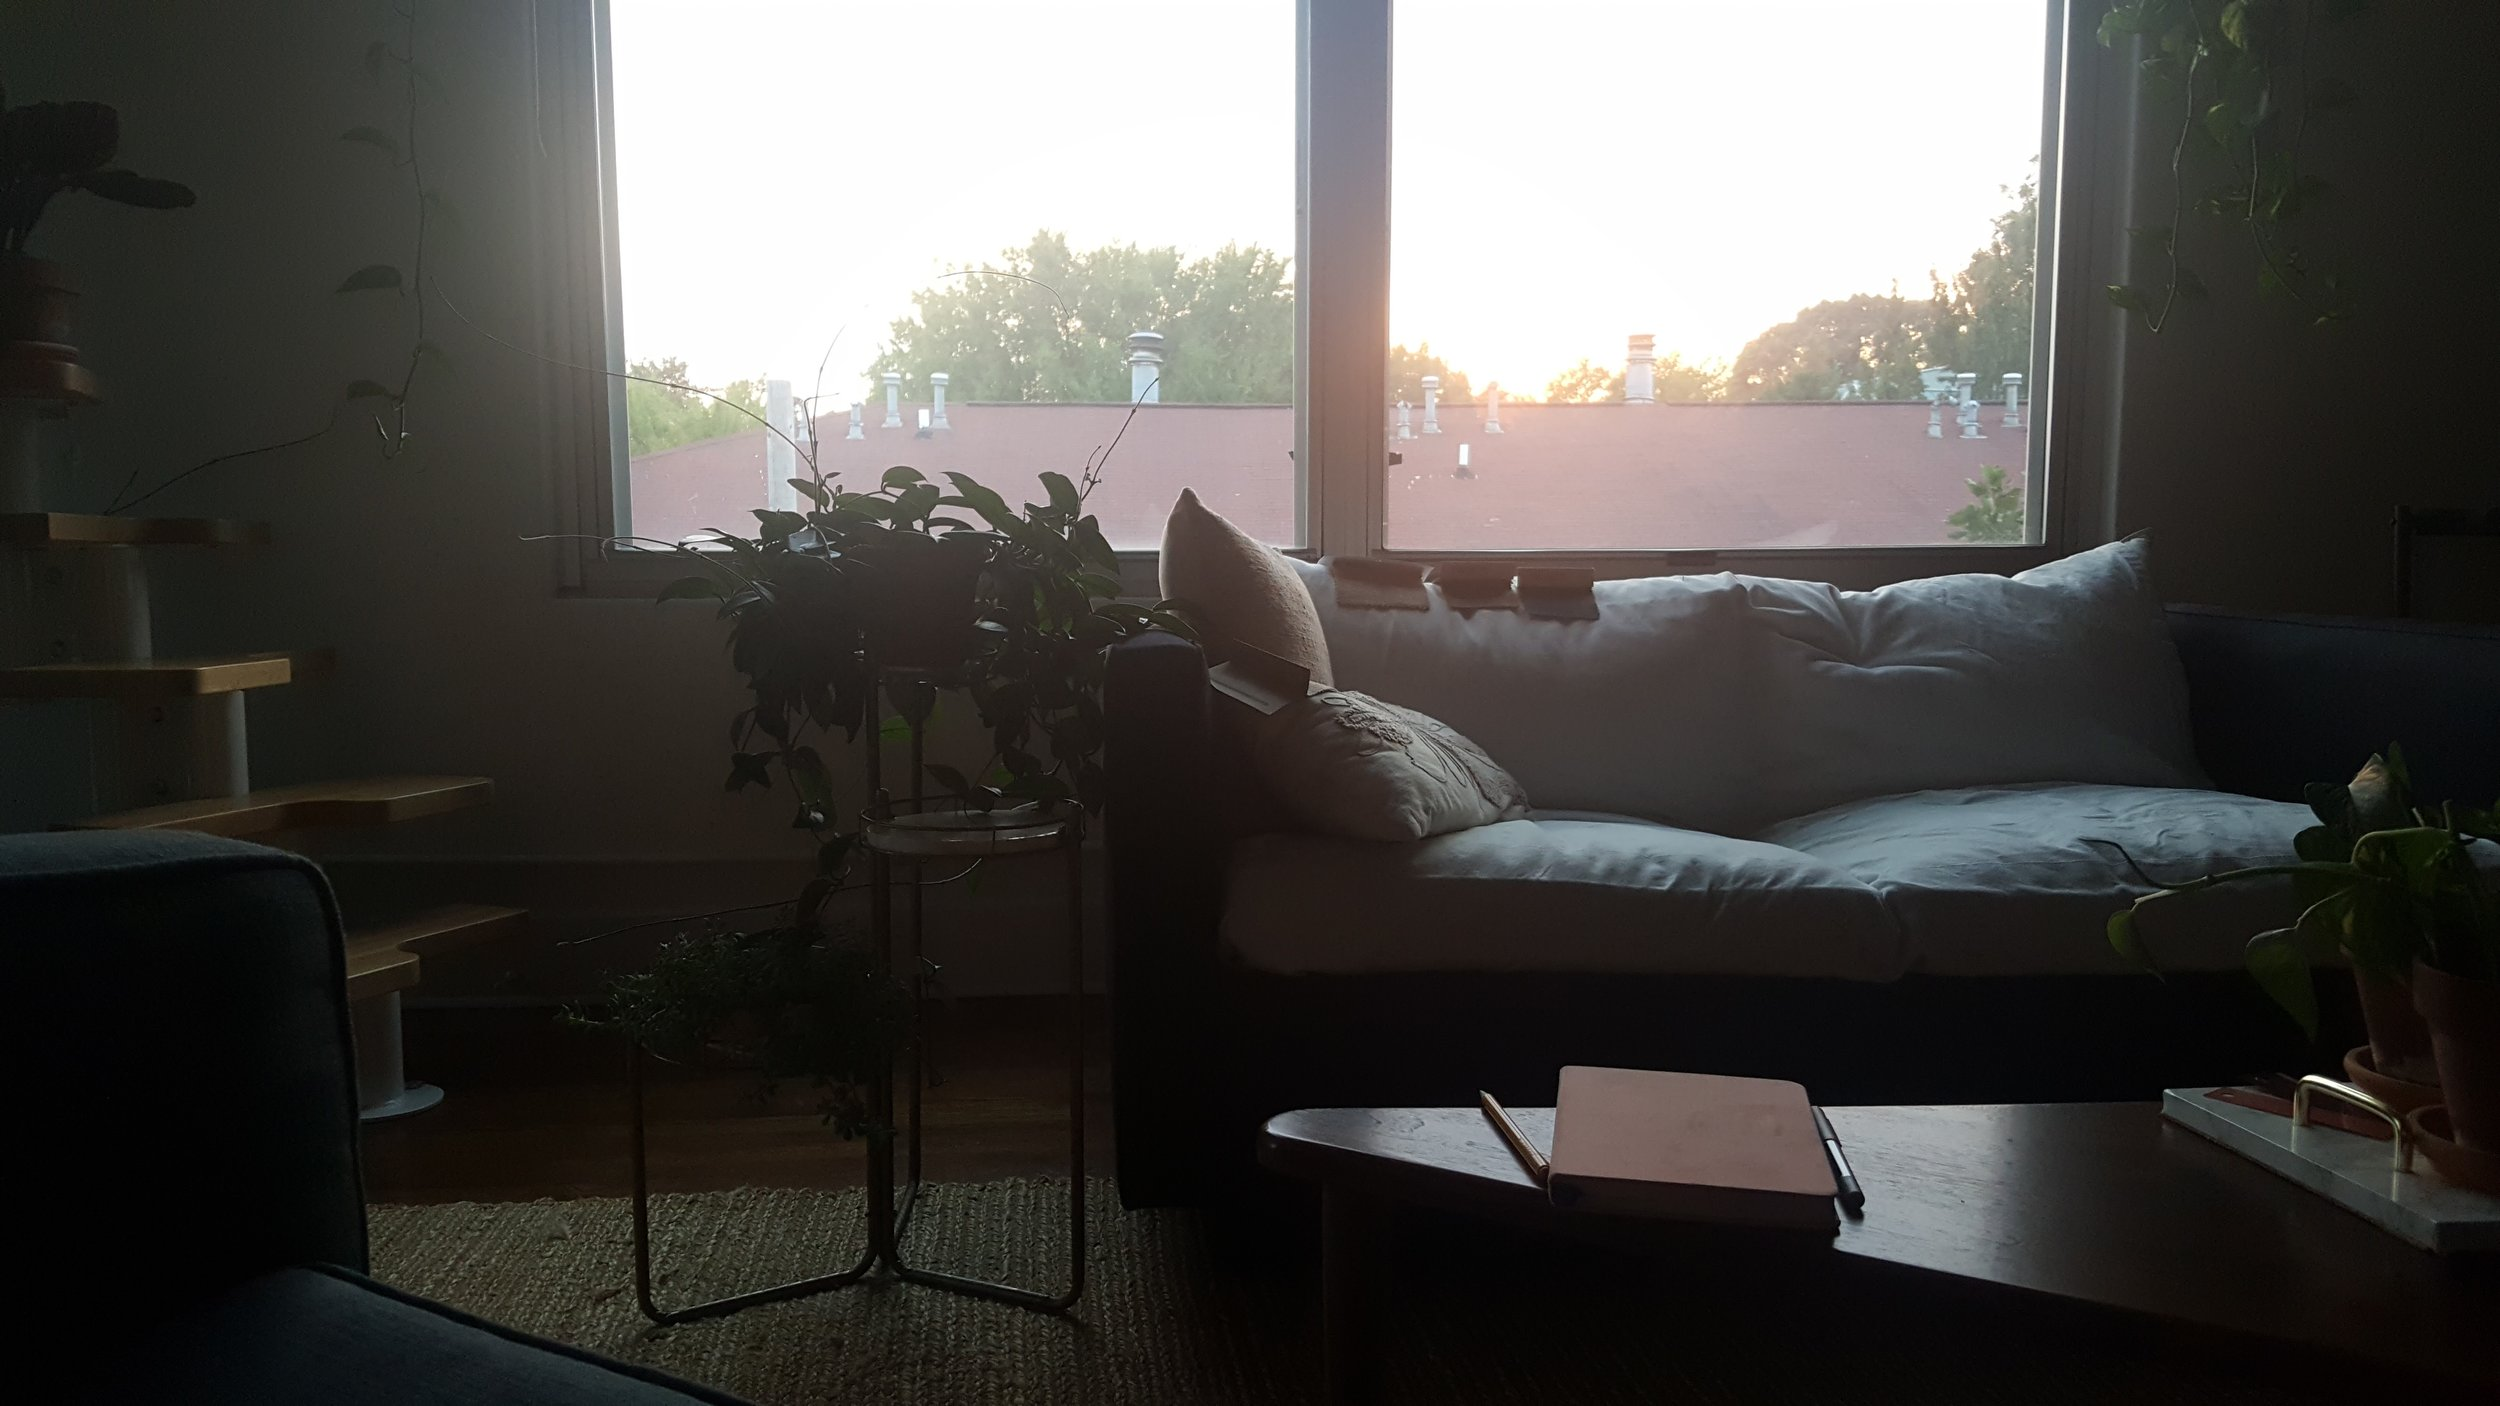 Living room window. Non-karate chopped cushions. Fabric swatches everywhere. Real life.